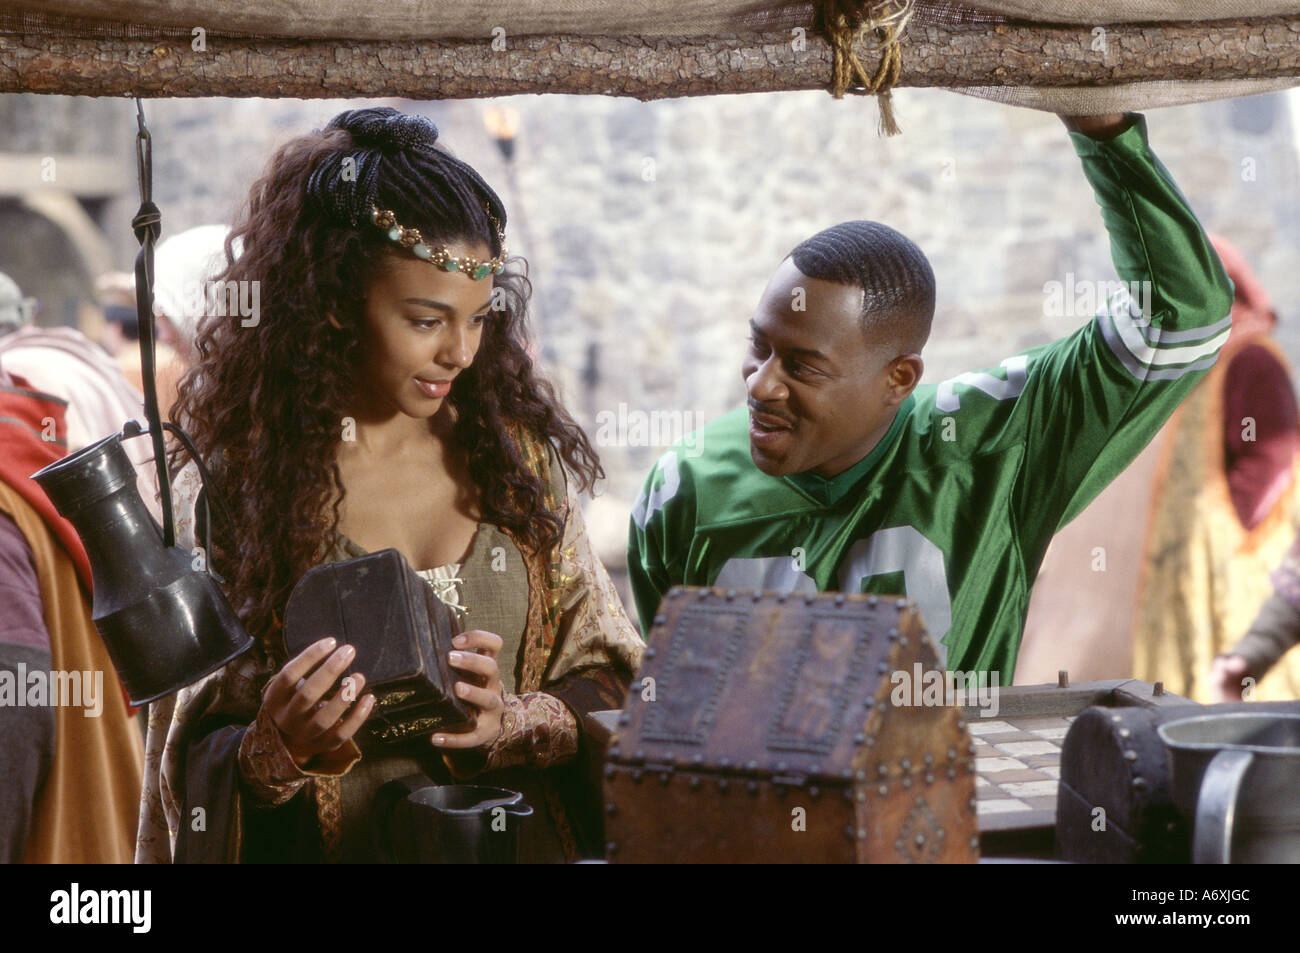 BLACK KNIGHT 2001 20th Century Fox film with Martin Lawrence as Jamal and Marsha Thomason as Victoria - Stock Image